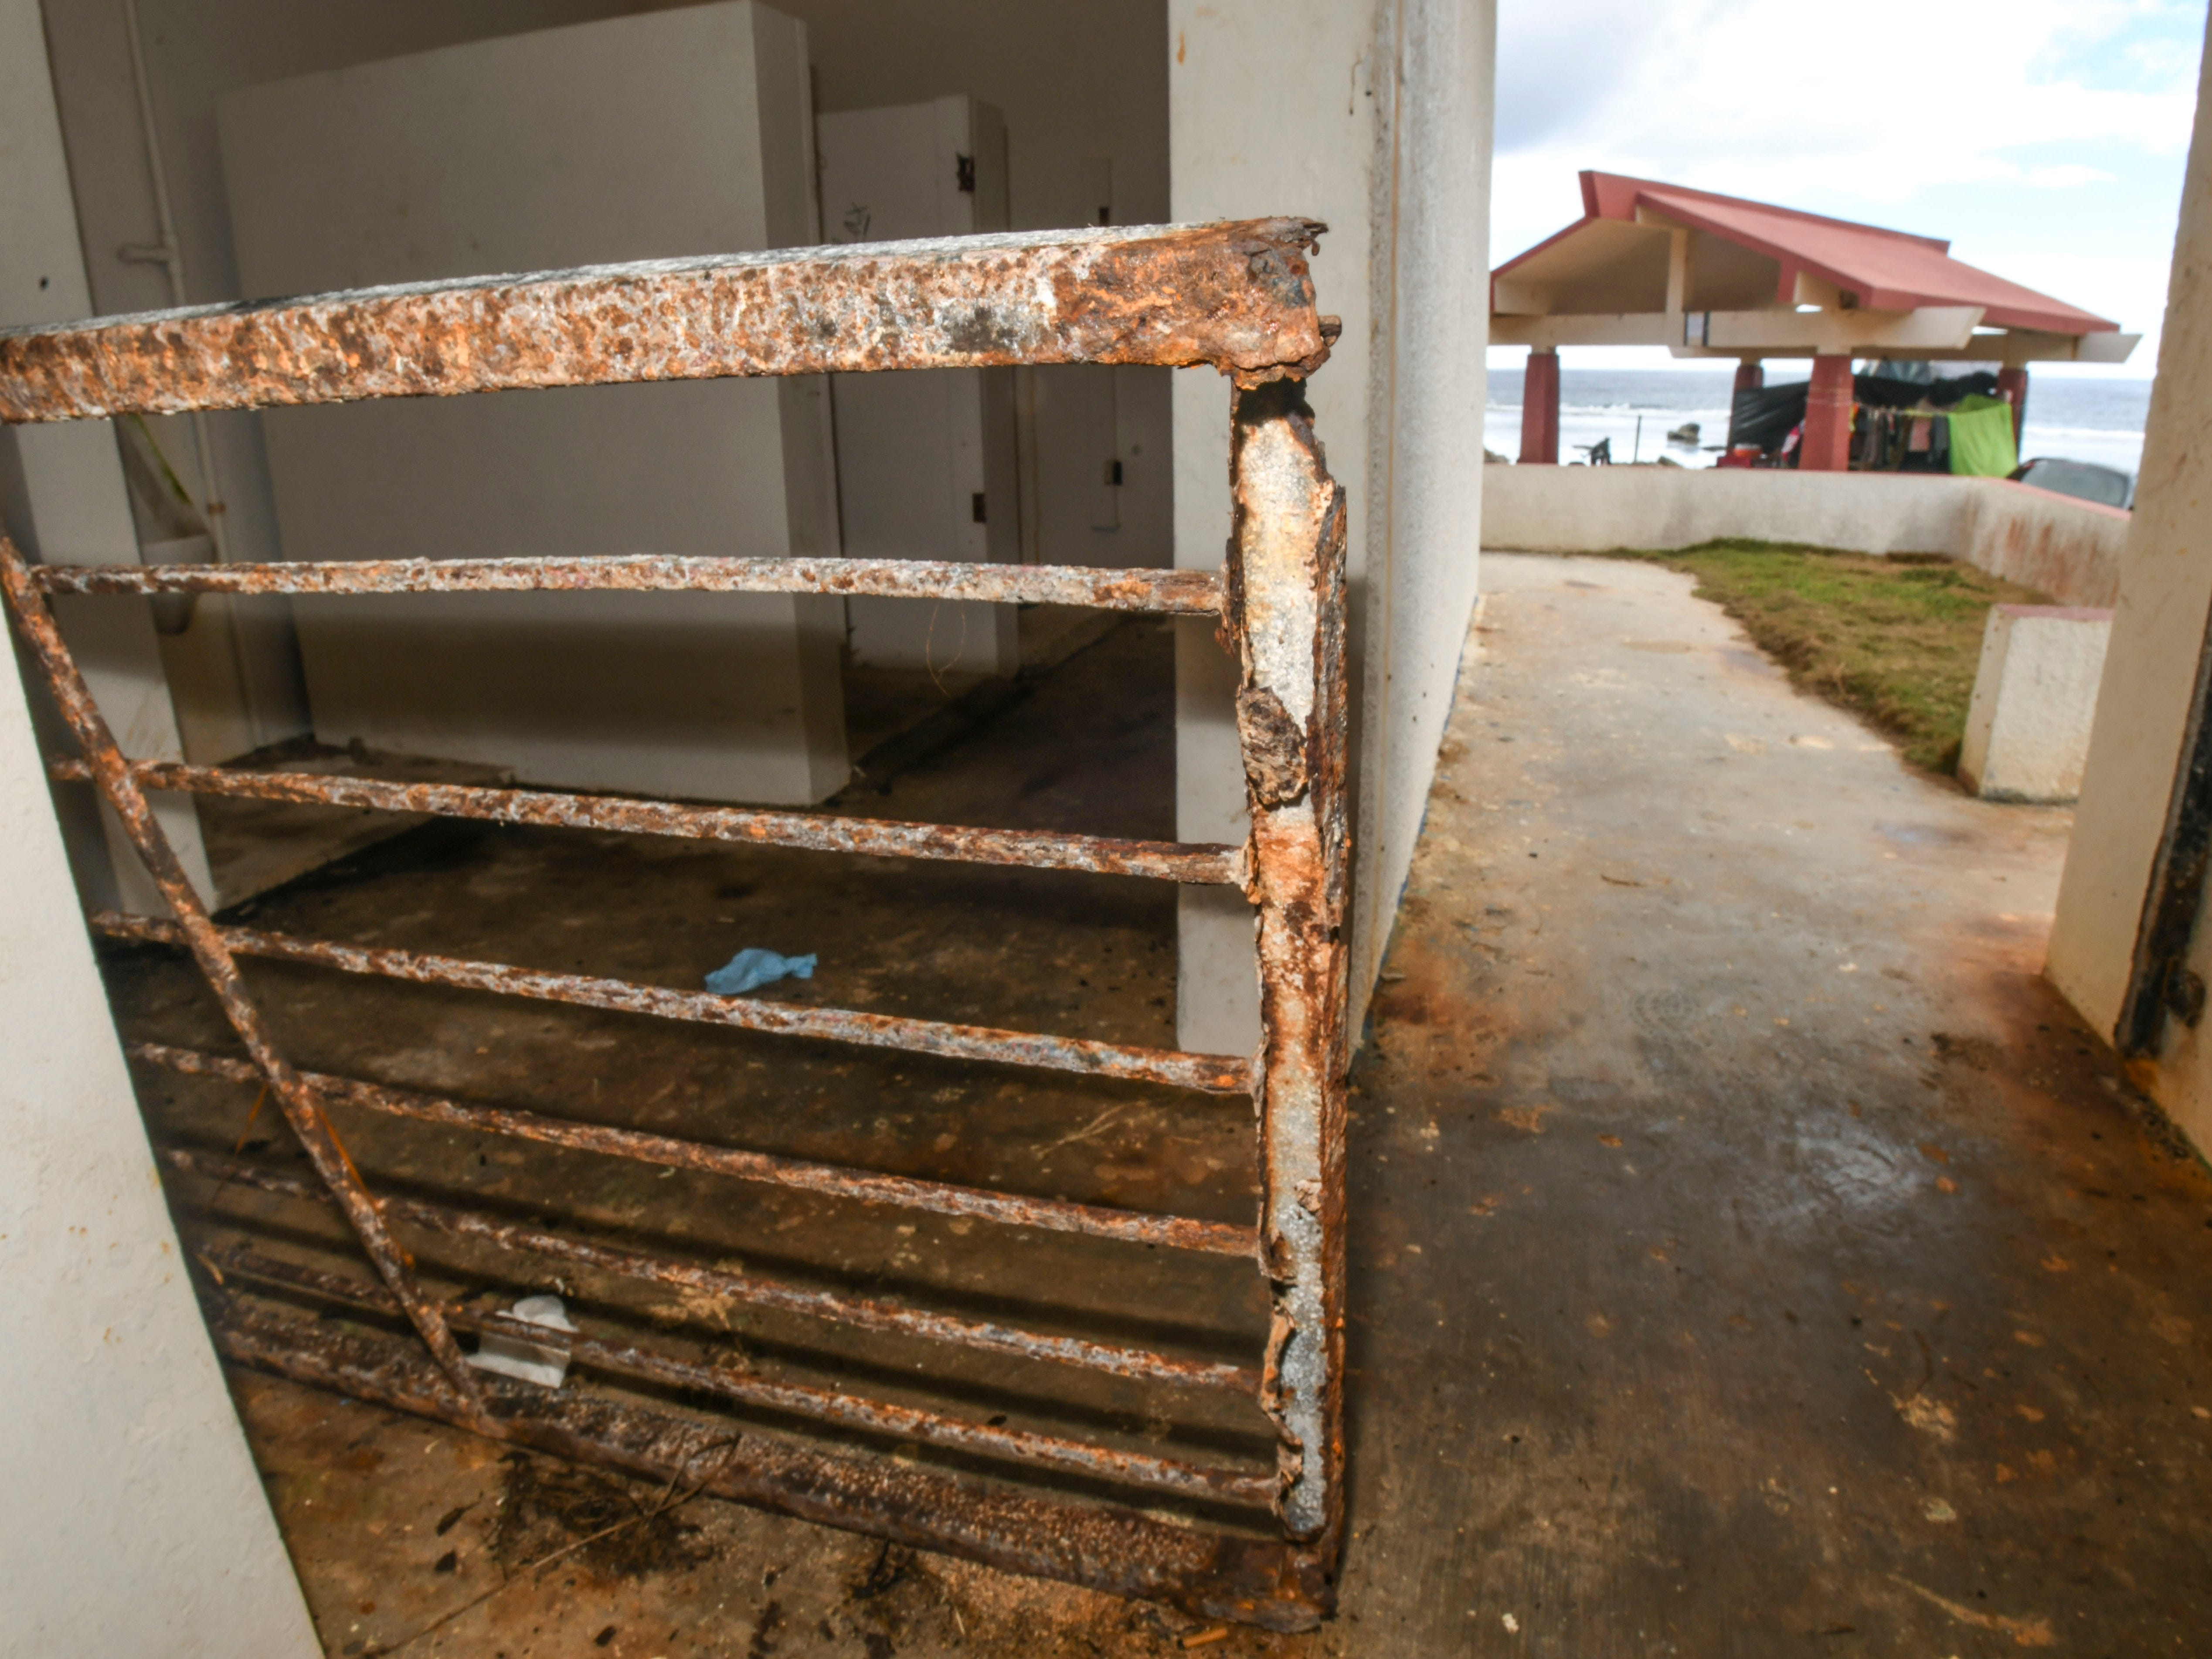 A rusted metal gate, that once served as a door for the men's restroom facility at Taga'chang Beach Park, can be found laying on its side against an interior wall, as men appearing to live in an open pavillion can be seen just outside, on Thursday, May 16, 2019.